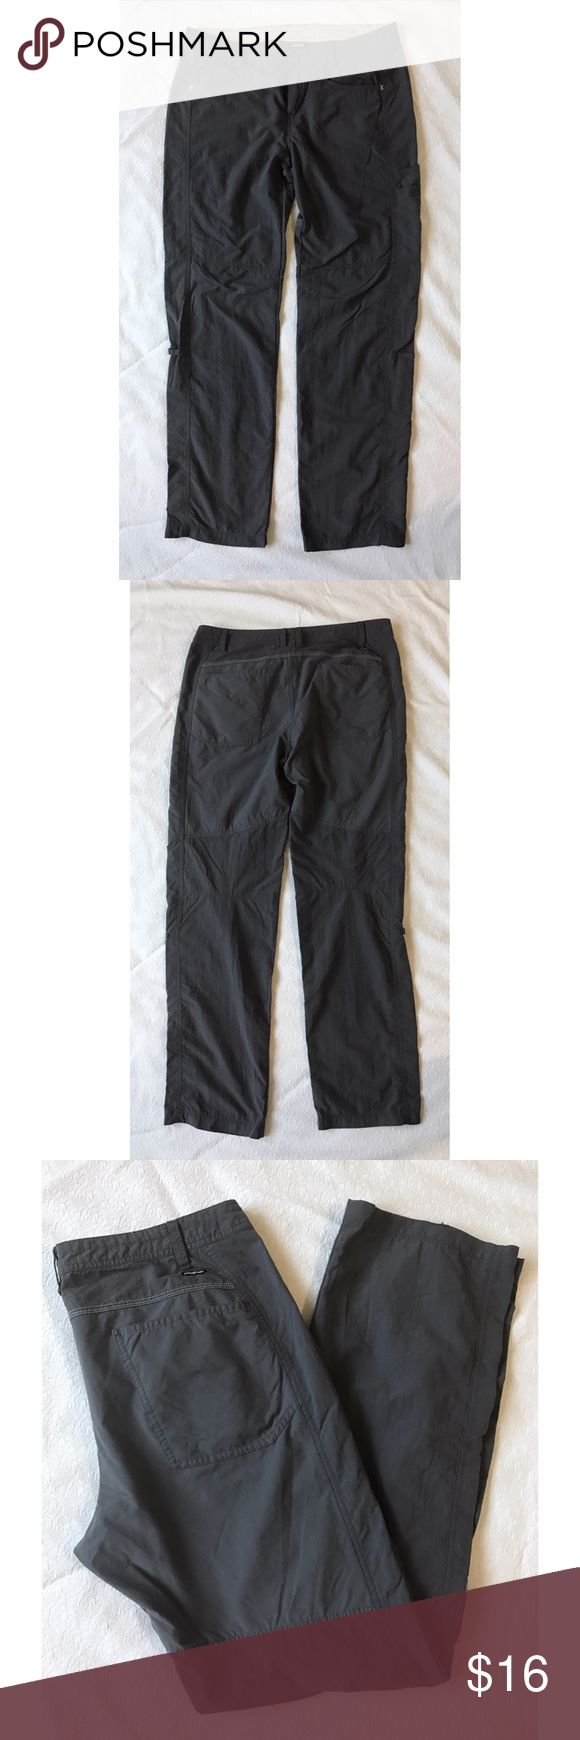 "Patagonia Gray Athletic Hiking Pants Women's 10 Patagonia Gray Athletic Hiking Pants Women's size 10. Pre-owned, does have a bit of a tear on bottom hem of leg (please see picture), but other than that, they are in very good condition. Measurements laying flat: waist 16.5"", rise 9.5"", inseam 35"" Patagonia Pants Straight Leg"